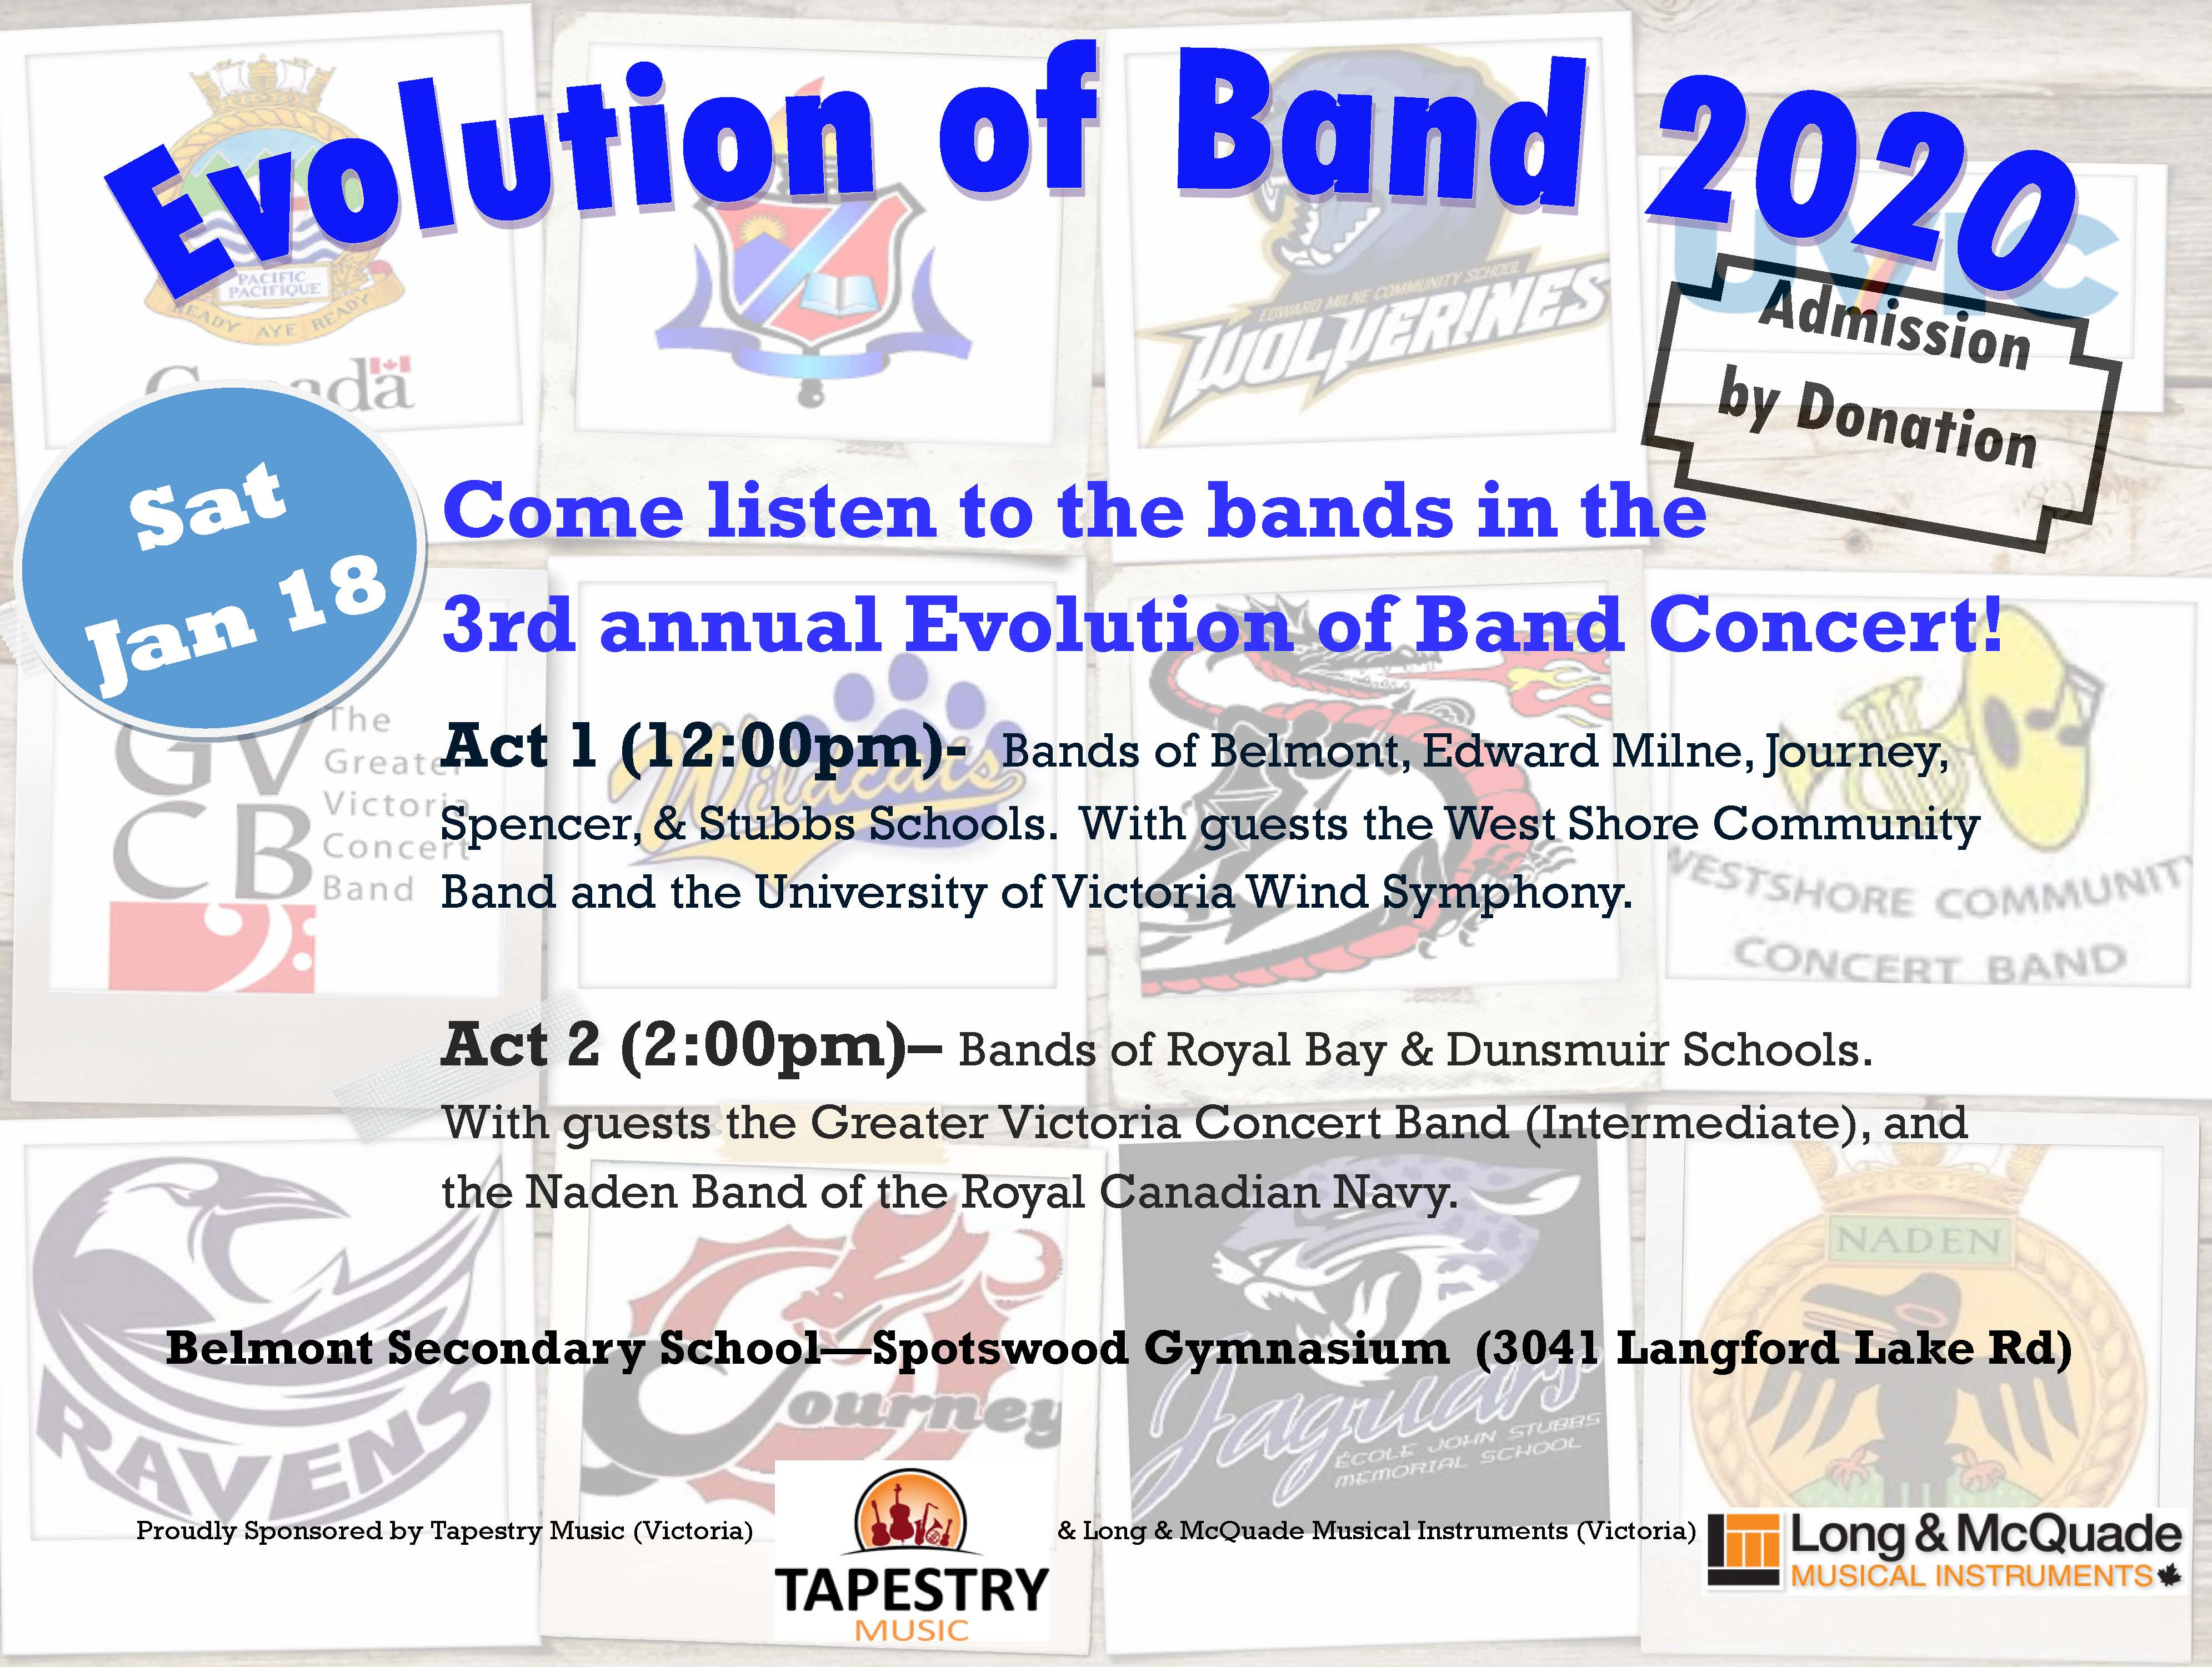 Evo of Band 2020 Poster FINAL